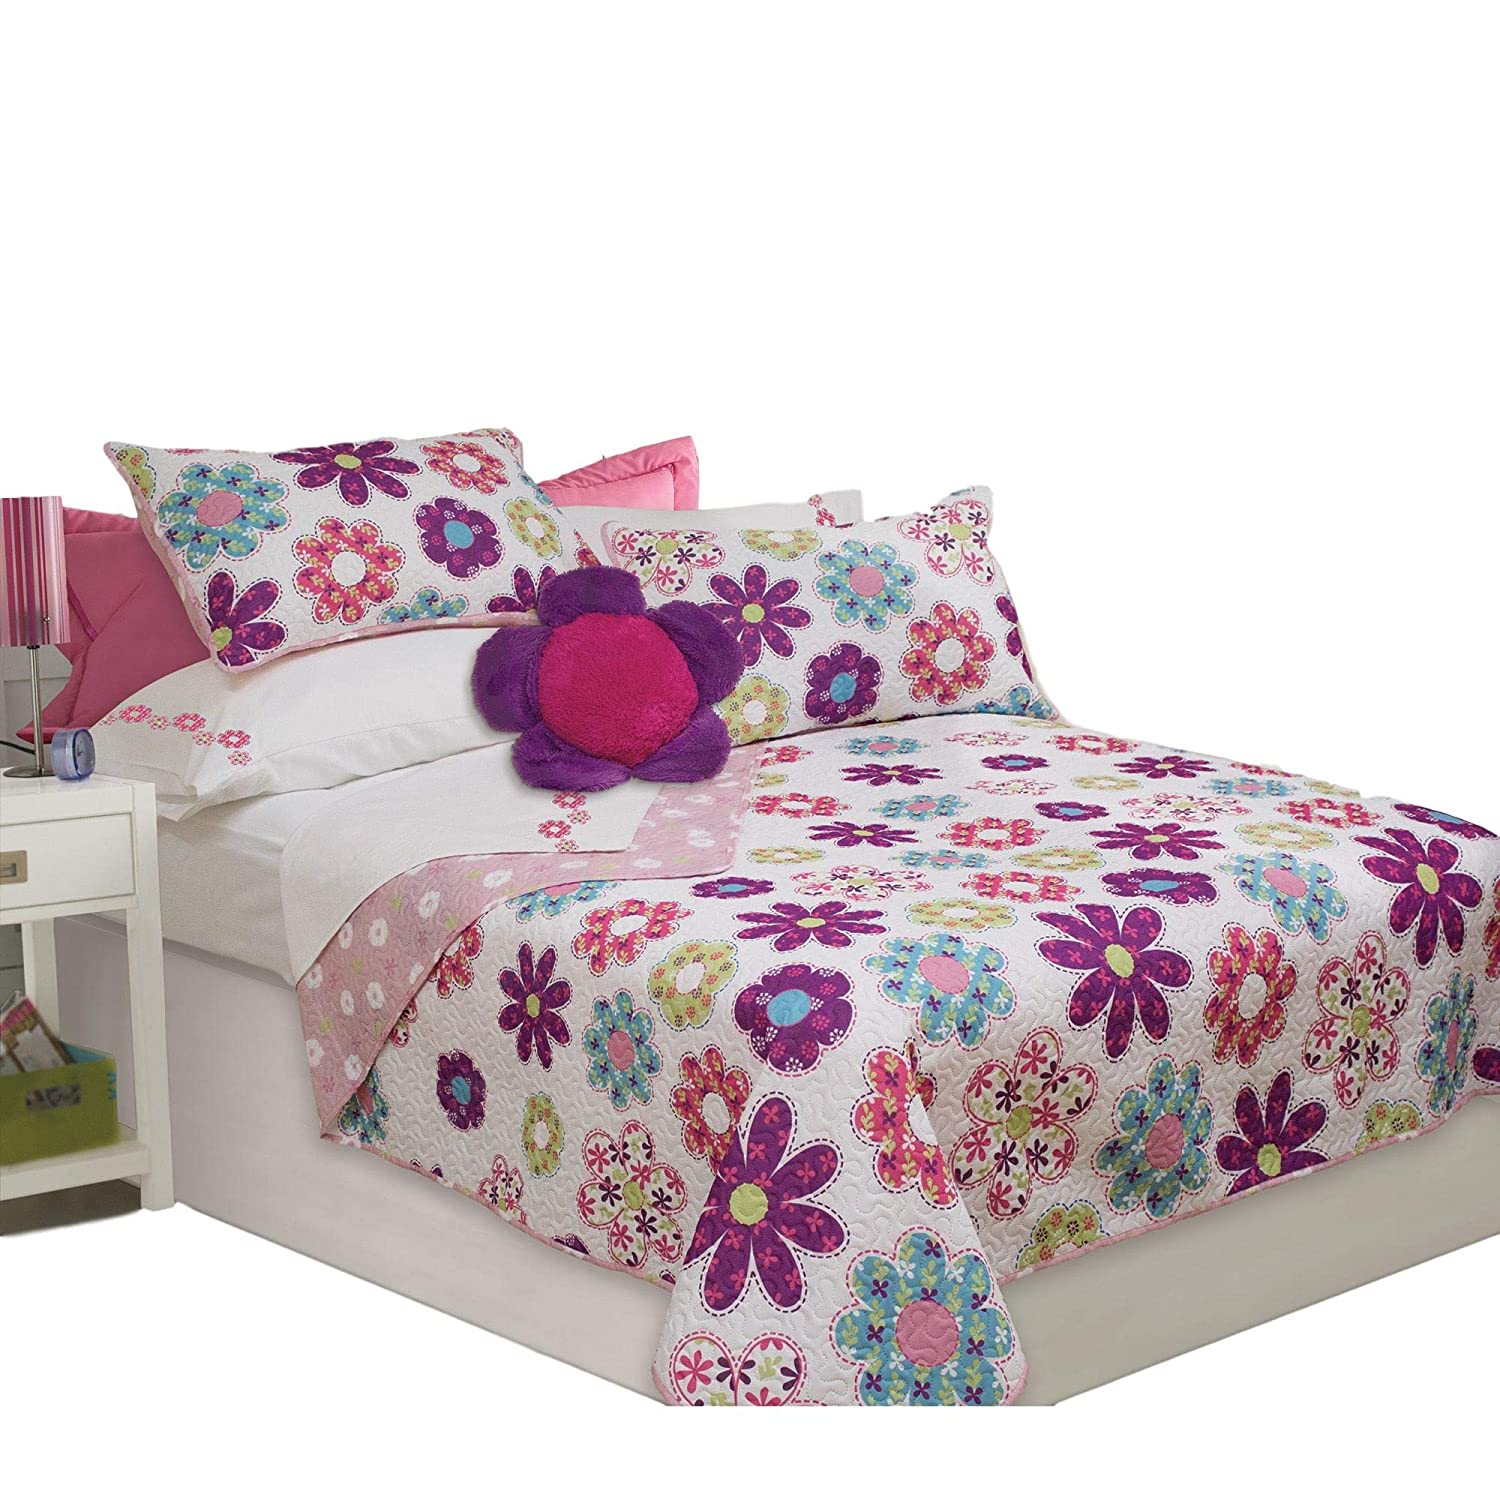 Holly Bedding Bedspread Coverlet Quilt Set, Twin 060971